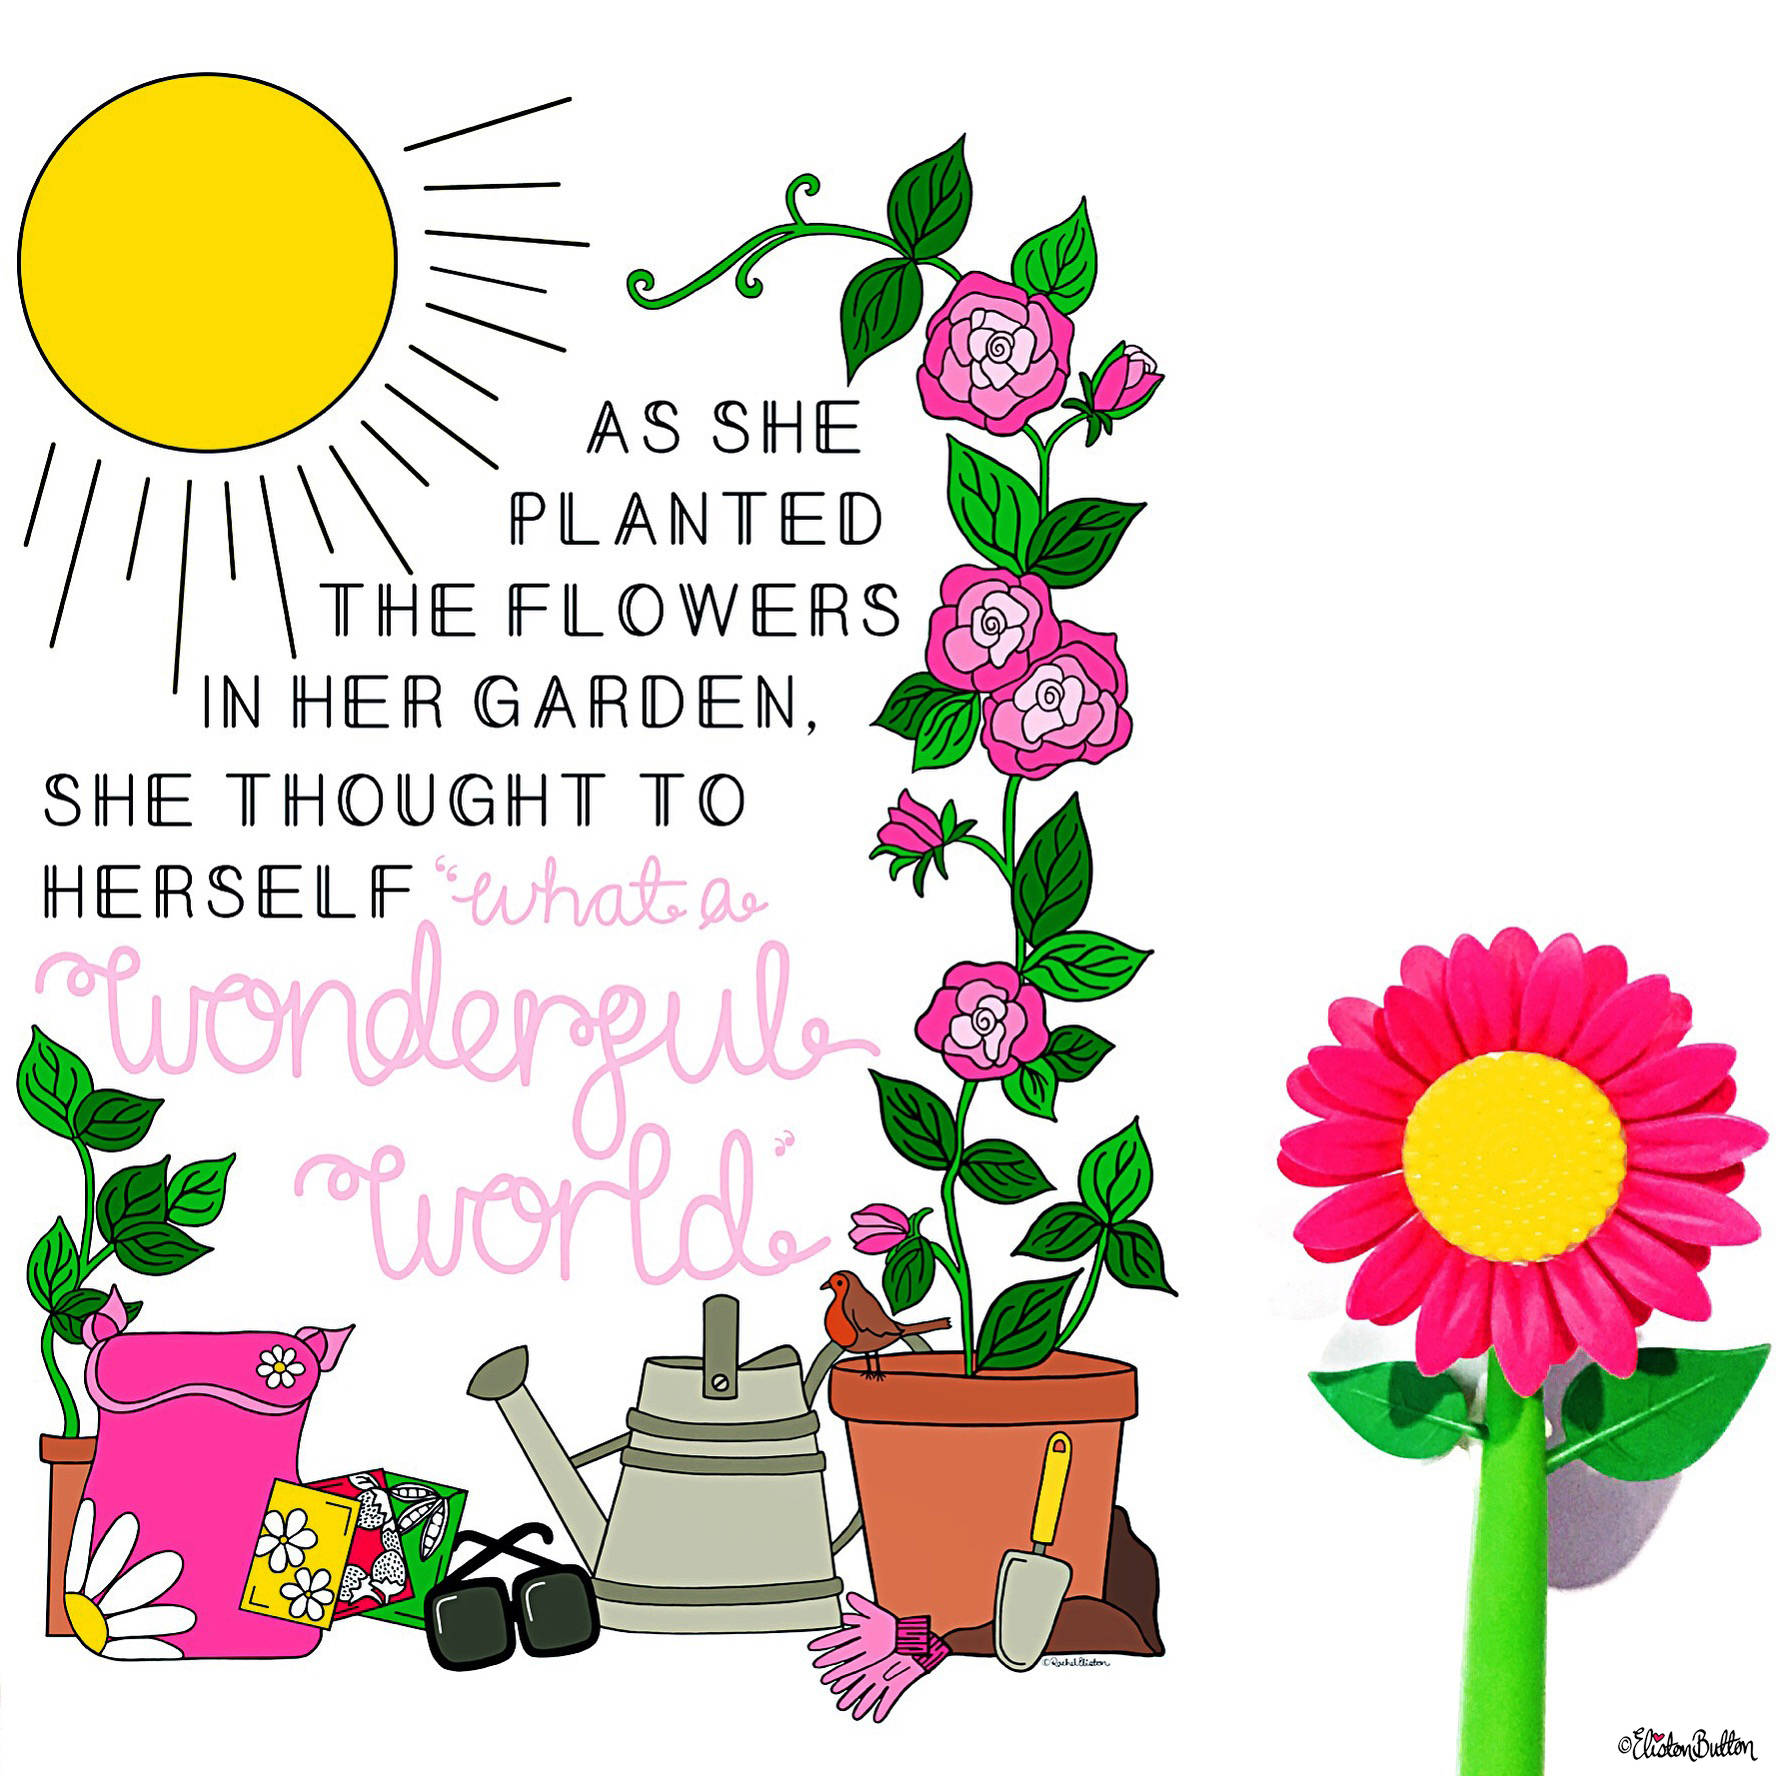 Wonderful World Gardener Garden Quote Print by Eliston Button - Eliston Button is Four! at www.elistonbutton.com - Eliston Button - That Crafty Kid – Art, Design, Craft & Adventure.